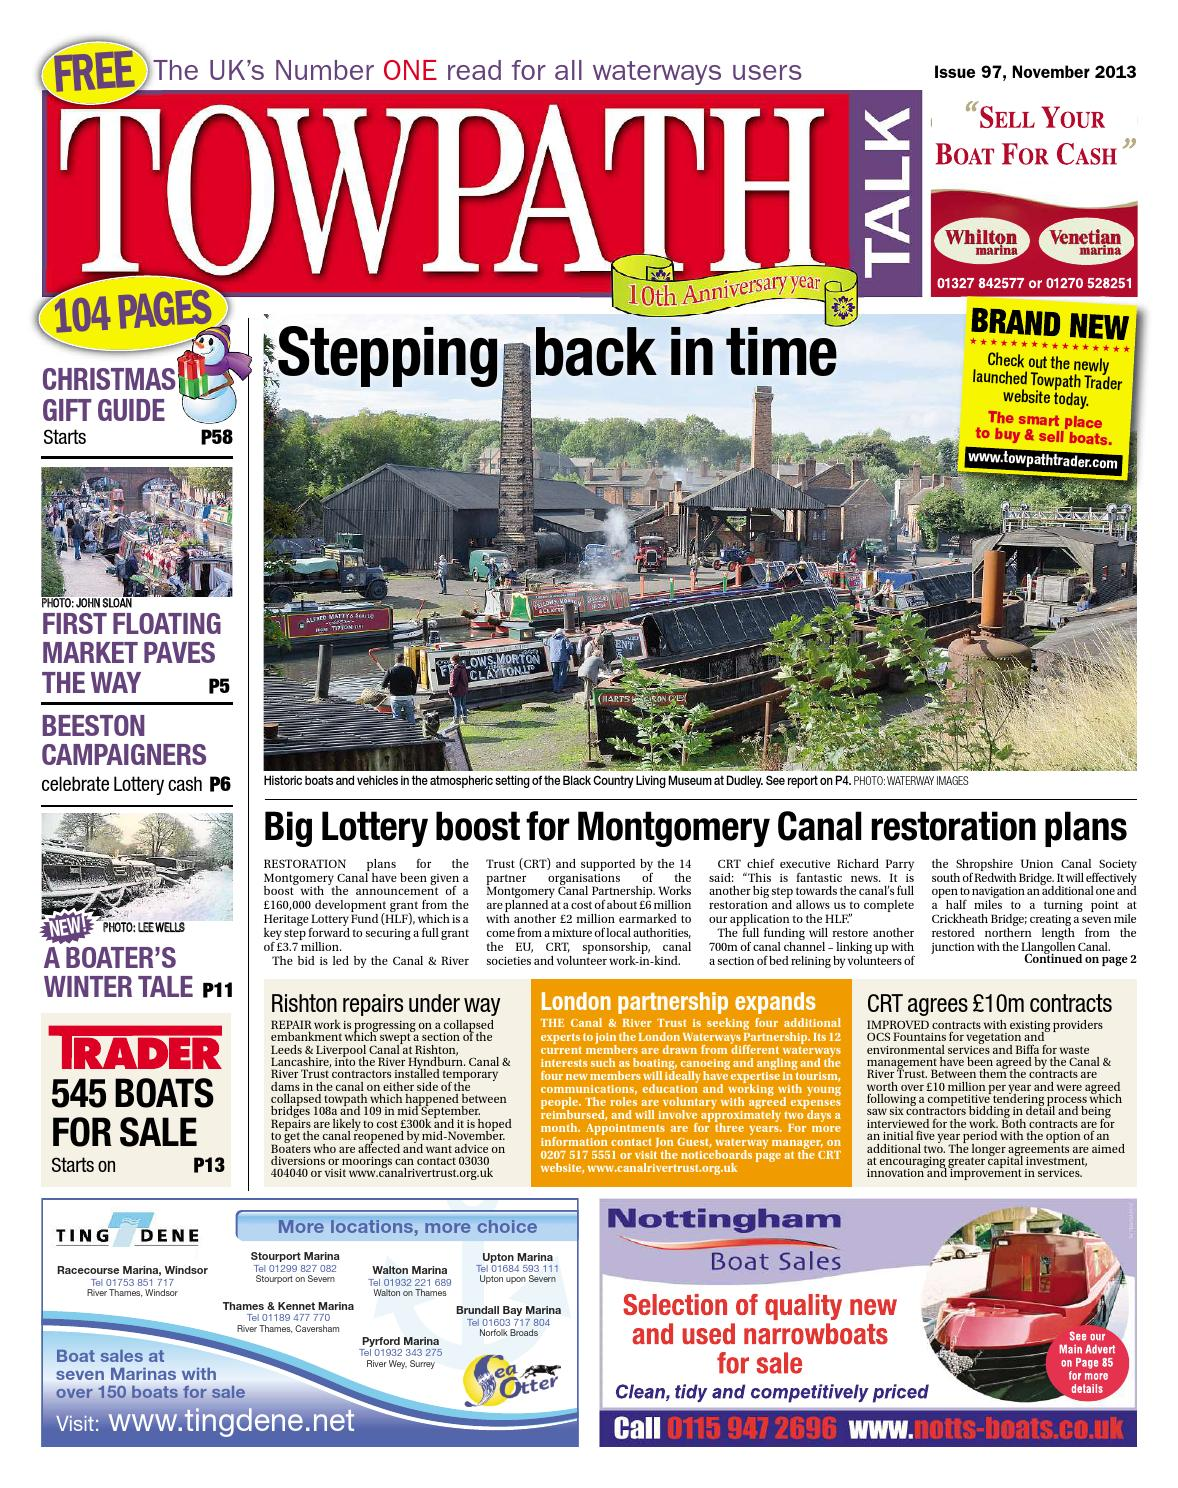 Towpath talk november 2013 full issue by mortons media group ltd issuu